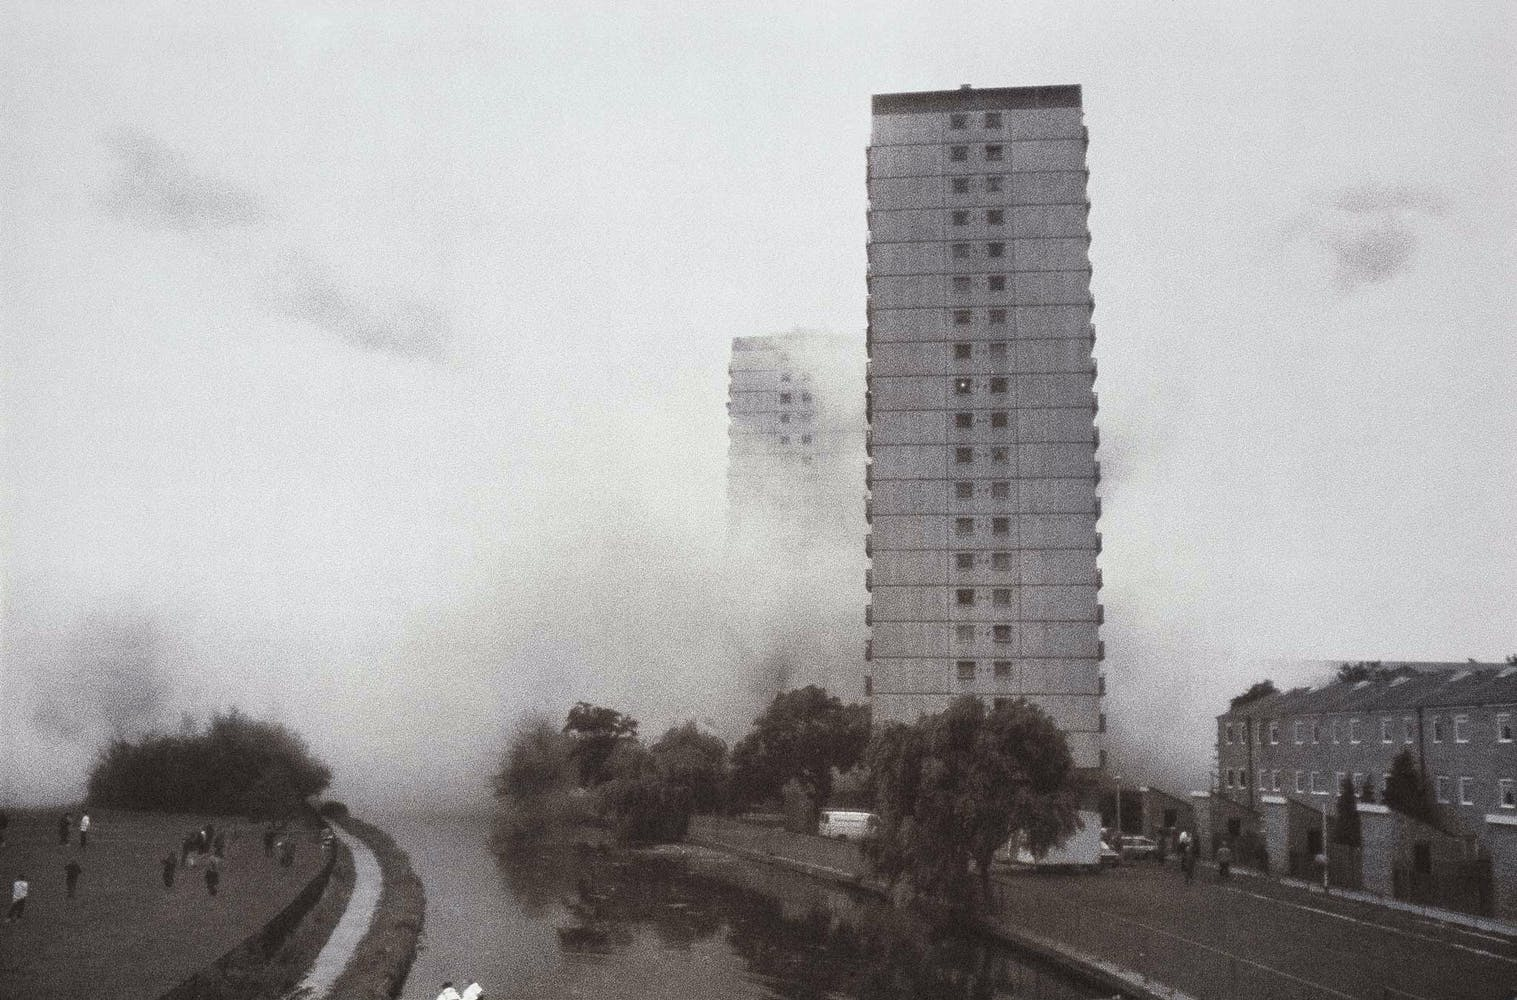 Rachel Whiteread, Demolished, 1996